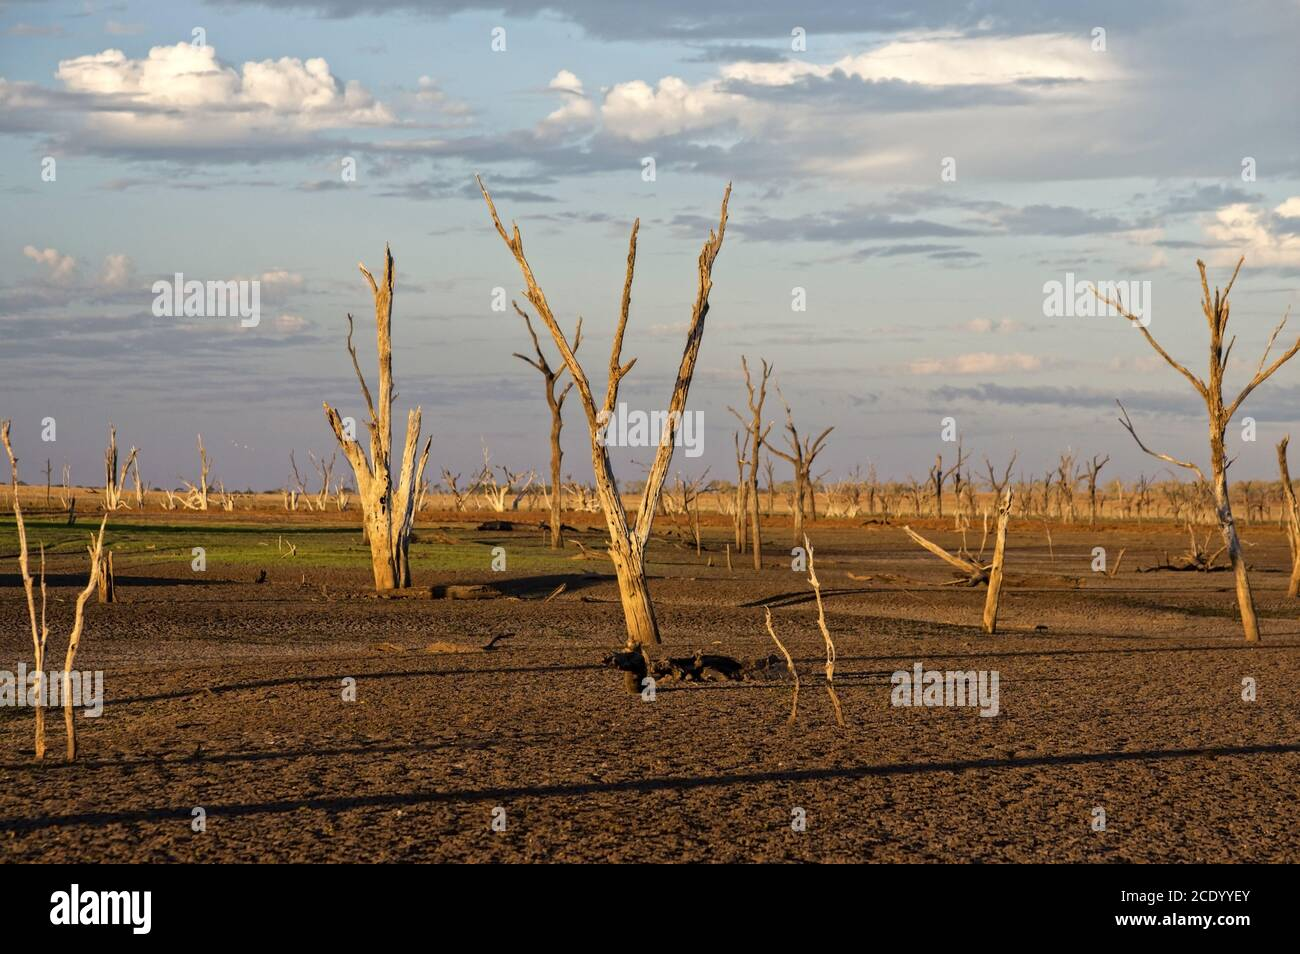 Dead trees at the wasteland of Lake Argyle at sunset with claudy sky as background at the outback in Australia with copy space Stock Photo